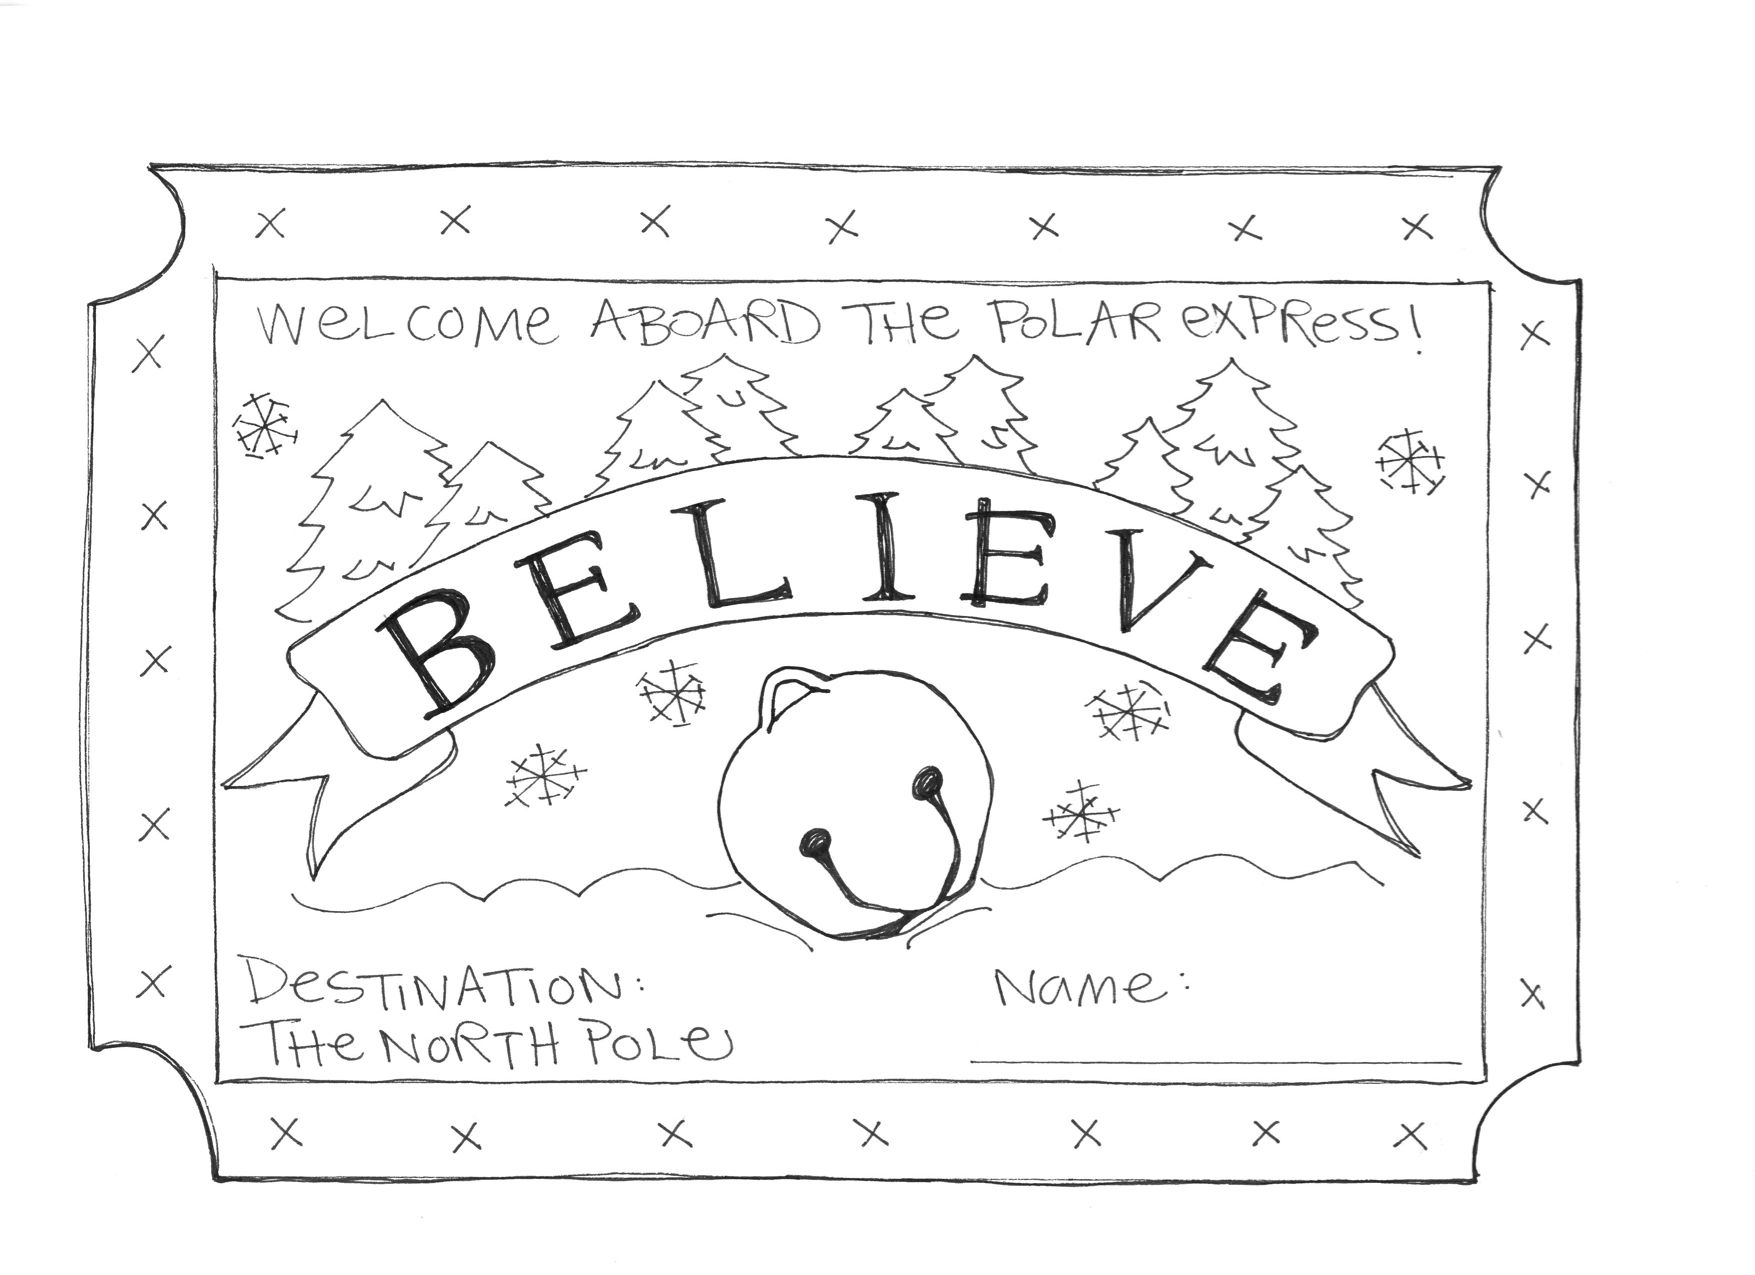 Made This Coloring Sheet For A Polar Express Themed Children S Event Thought Some Of My Teac Polar Express Activities Polar Express Theme Polar Express Crafts